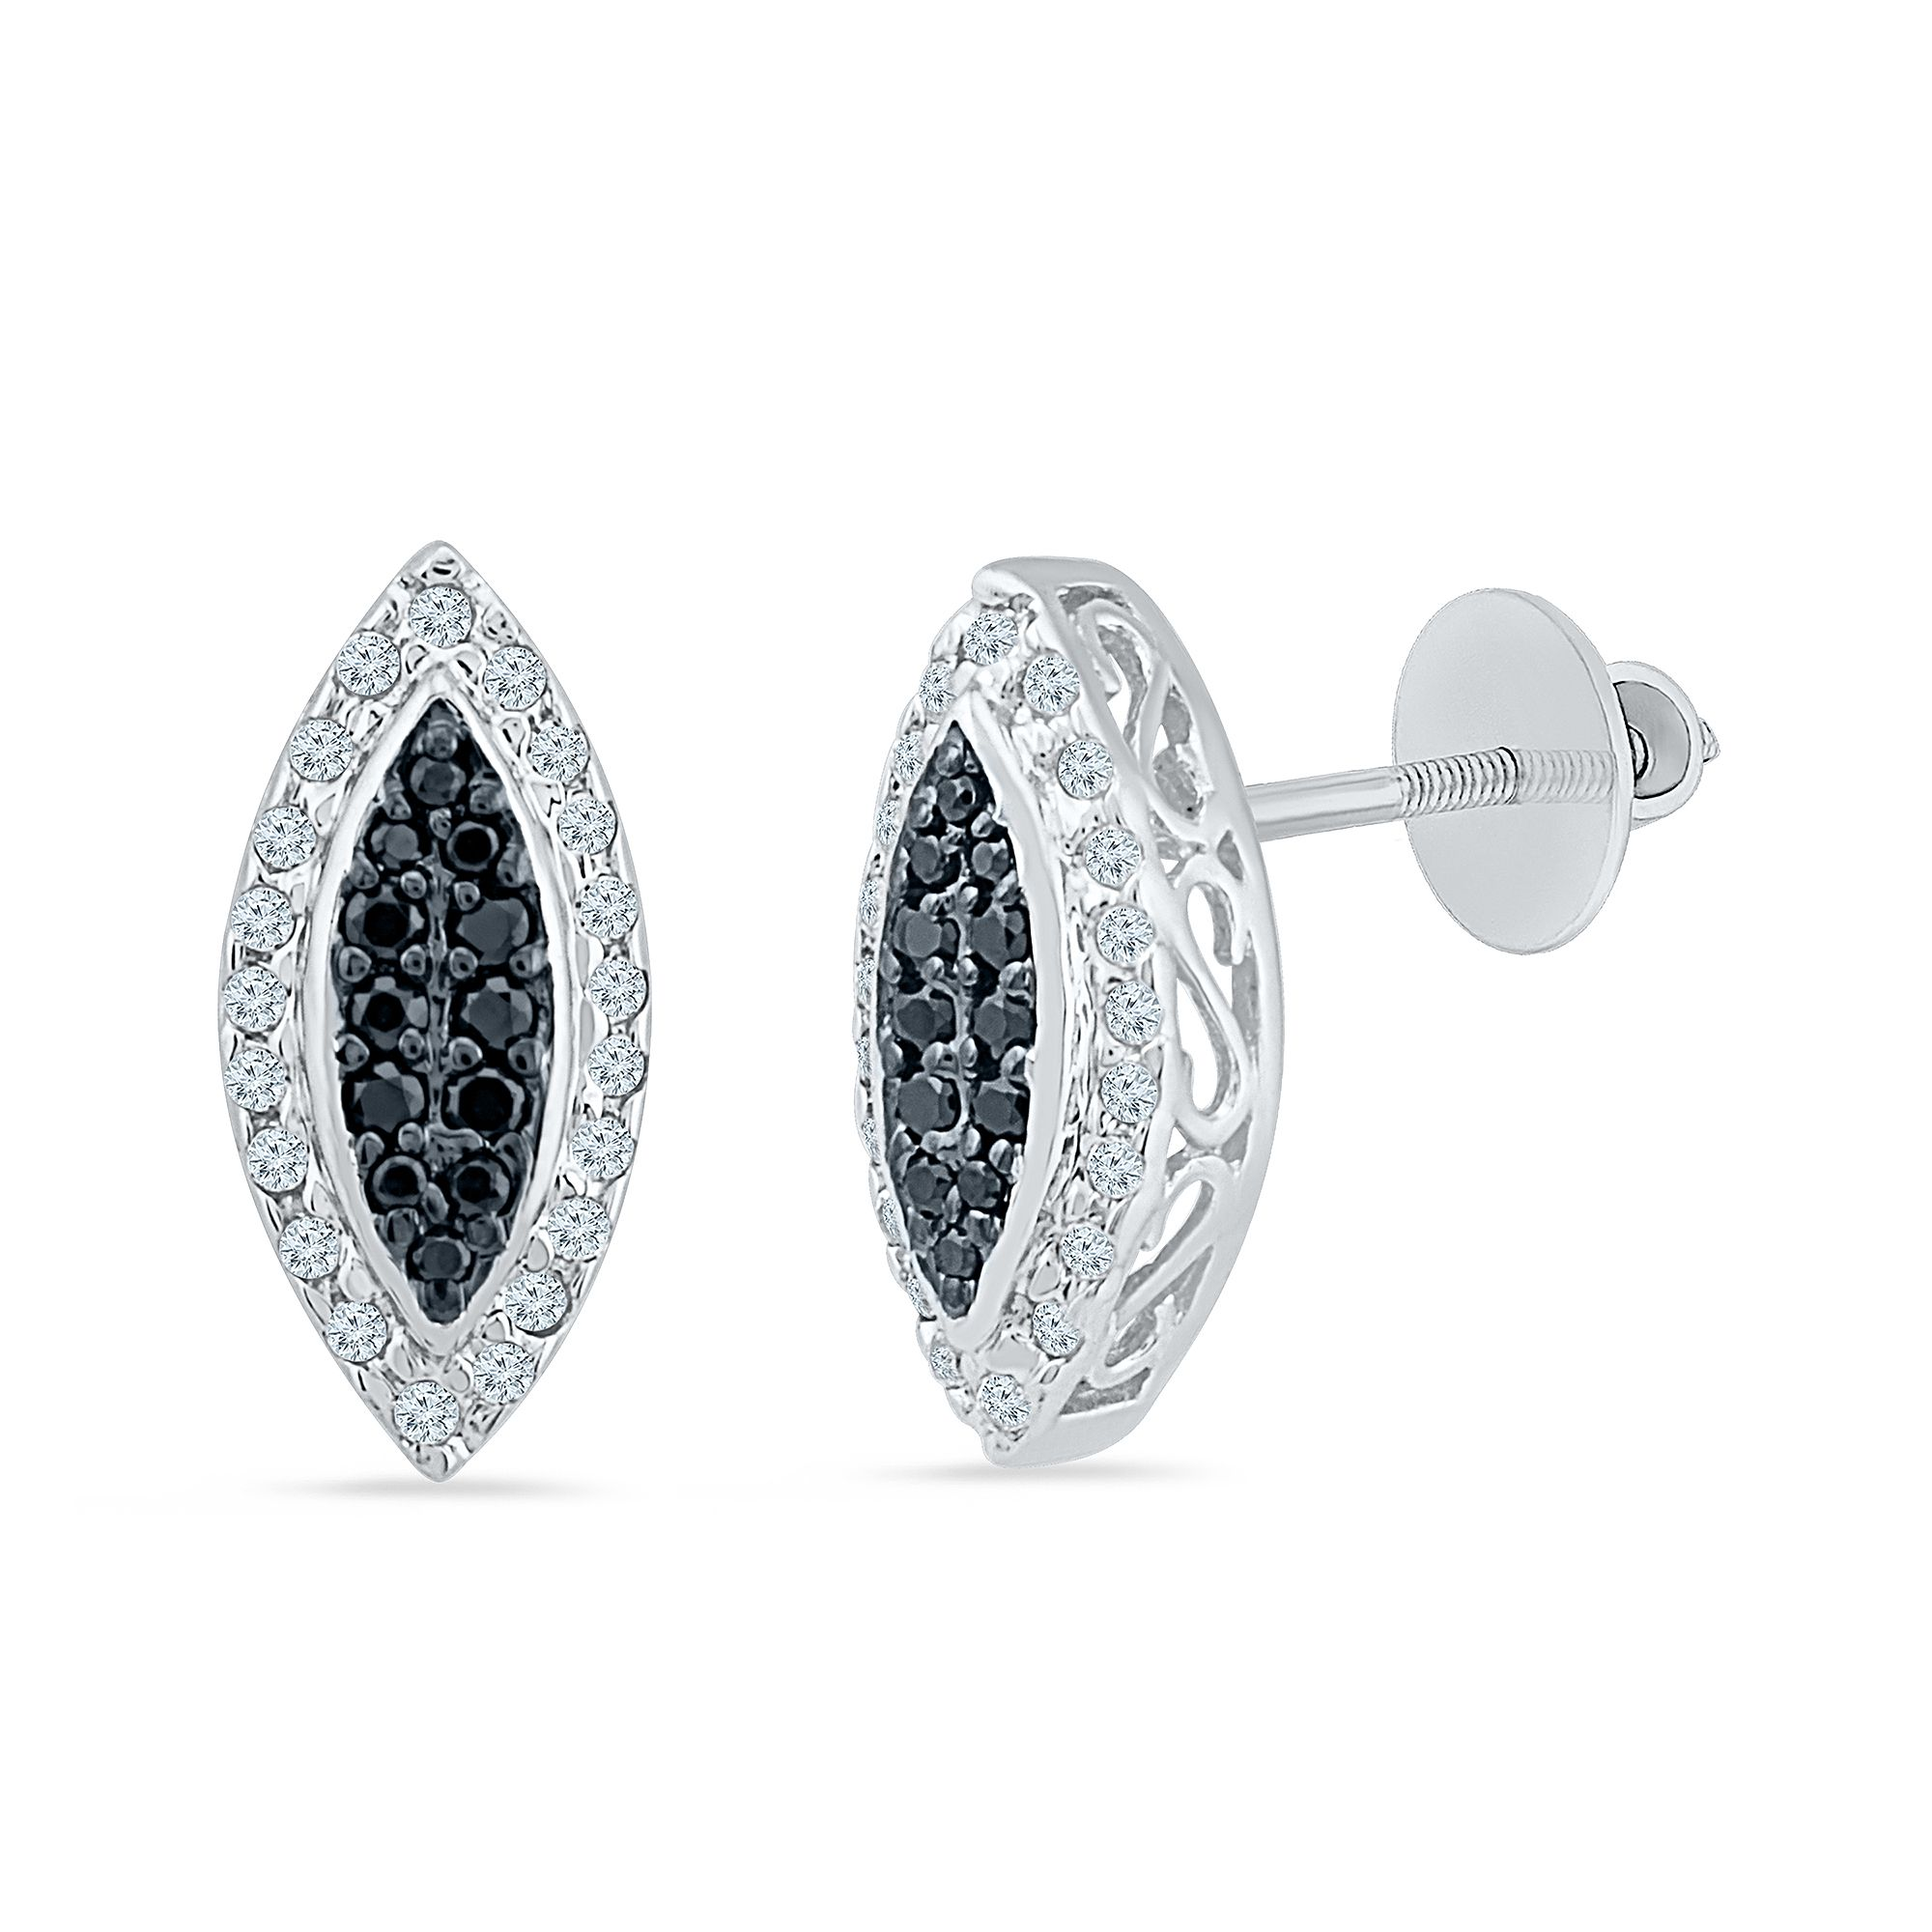 6a24cecbb Buy black and white diamond stud earrings in white and yellow gold online  with Radiant Bay. Explore latest designs at best price in india. Purity  Guaranteed